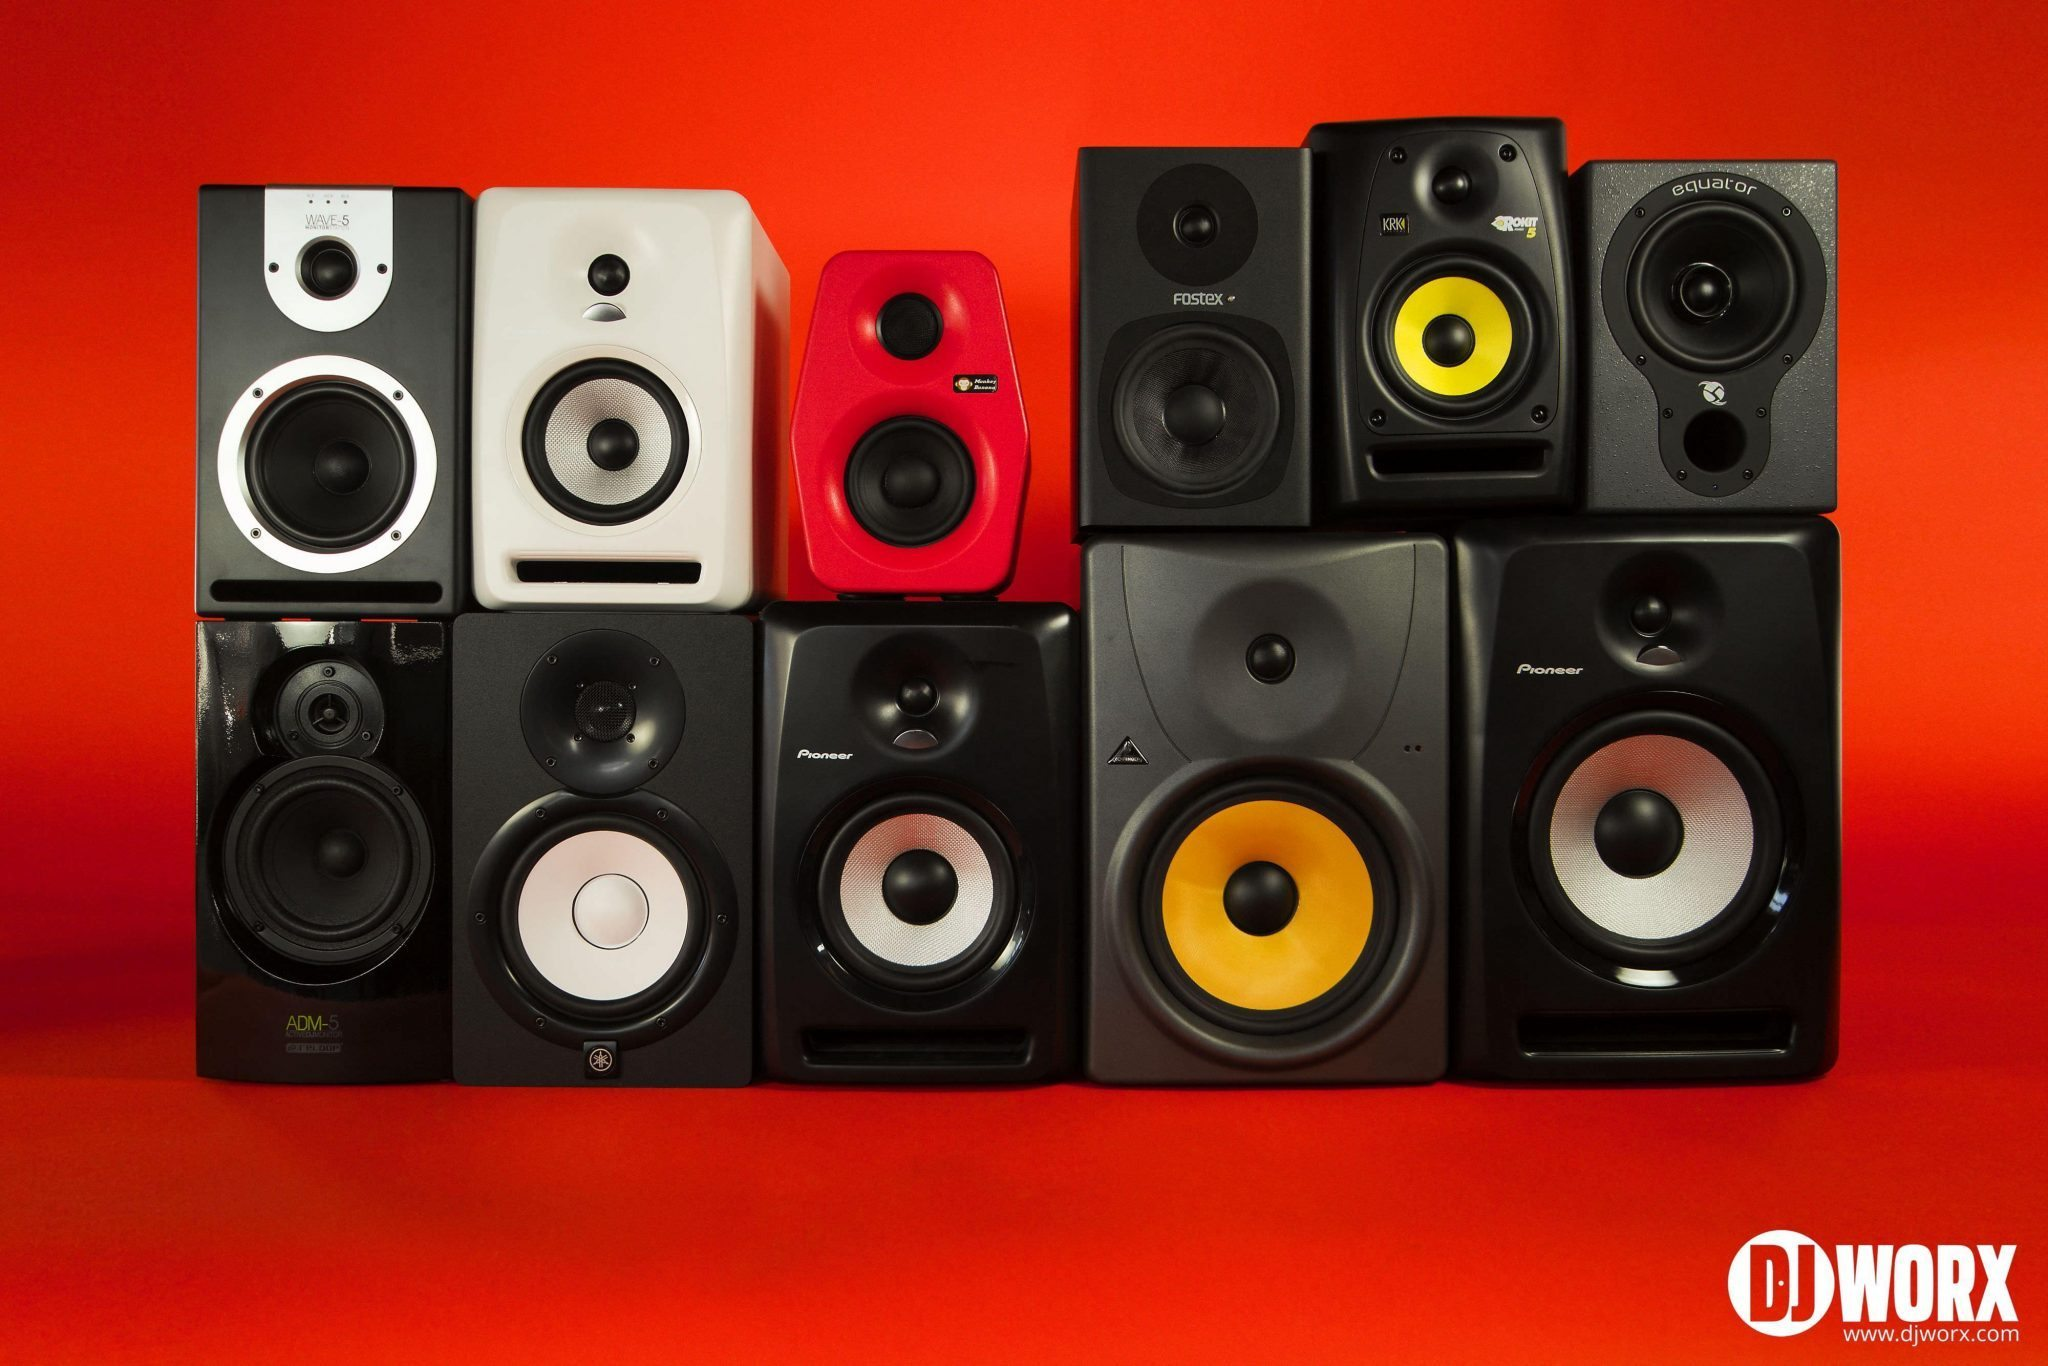 DJ entry level studio monitors group test (8)